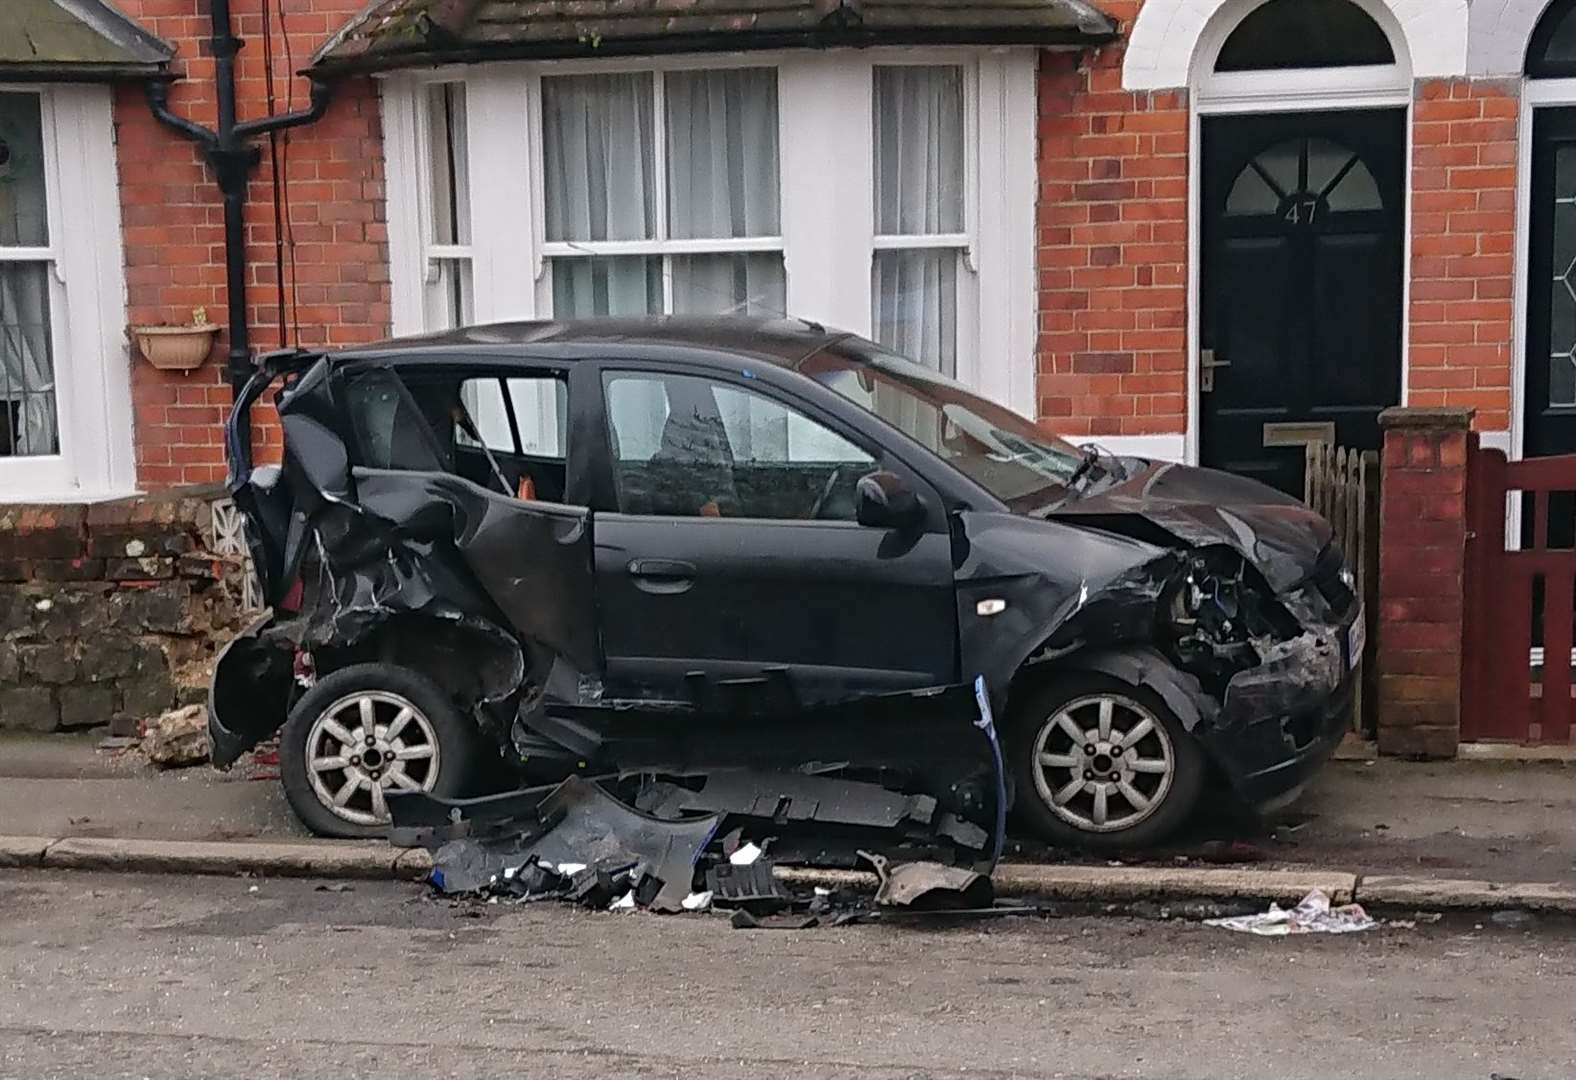 Car abandoned after smashing into wall